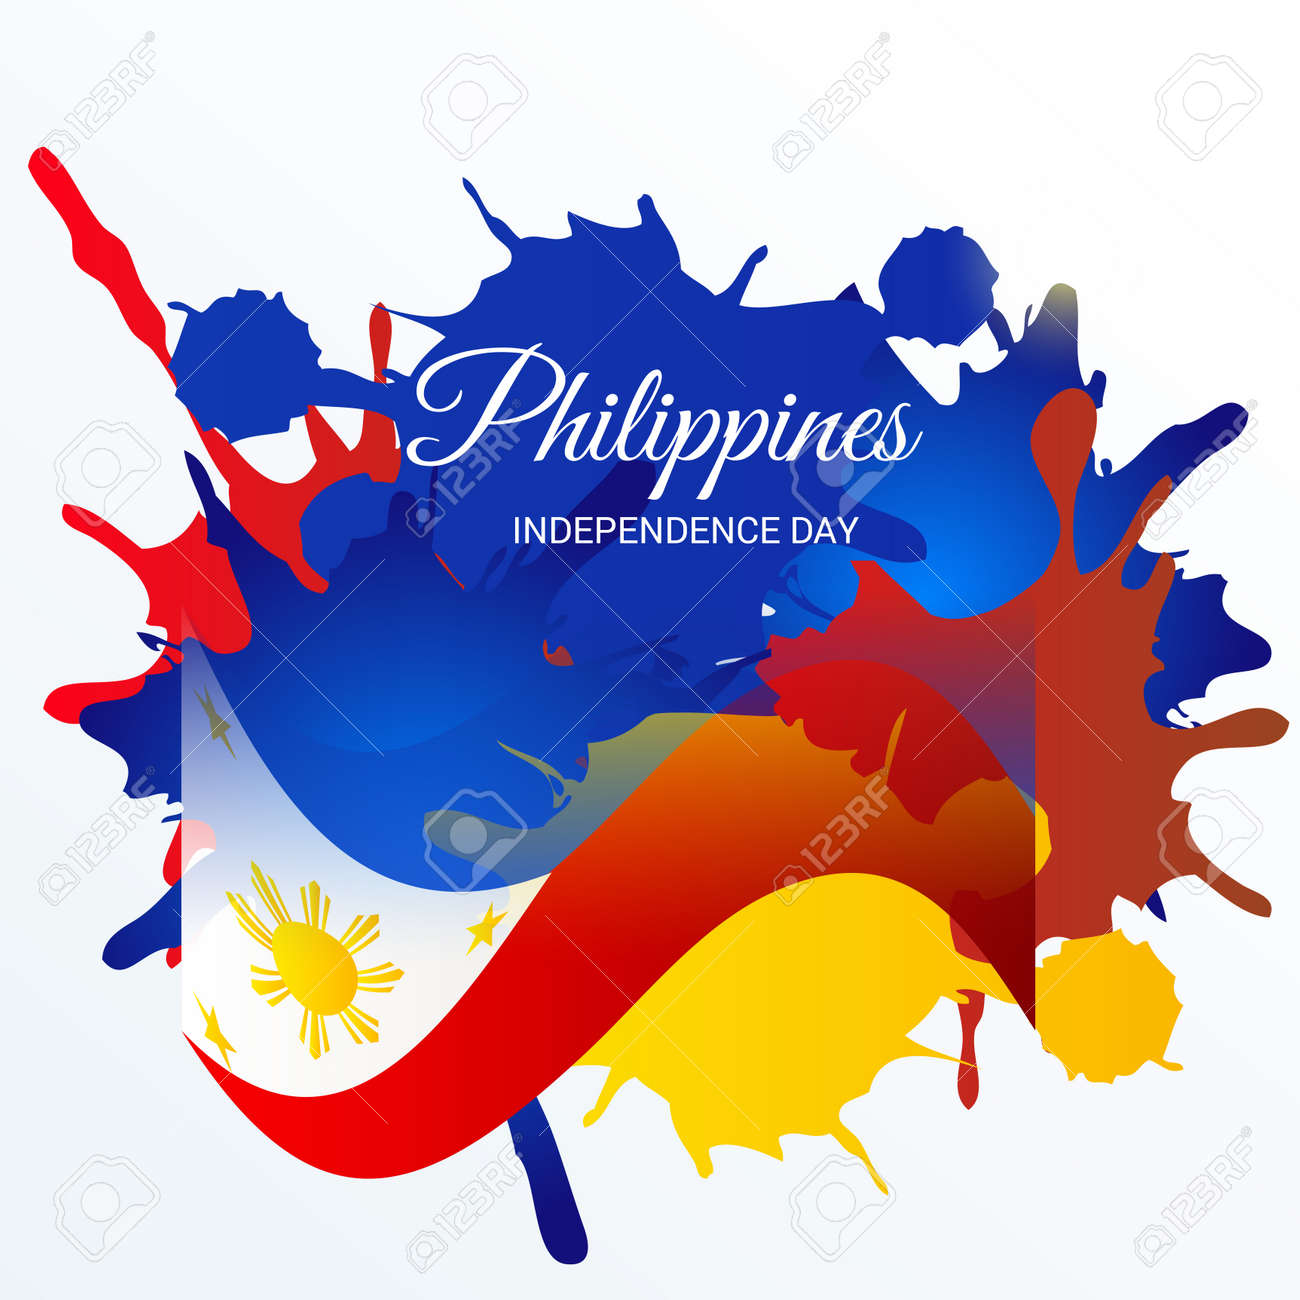 Independence Day.Philippines Independence Day Royalty Free Cliparts Vectors And